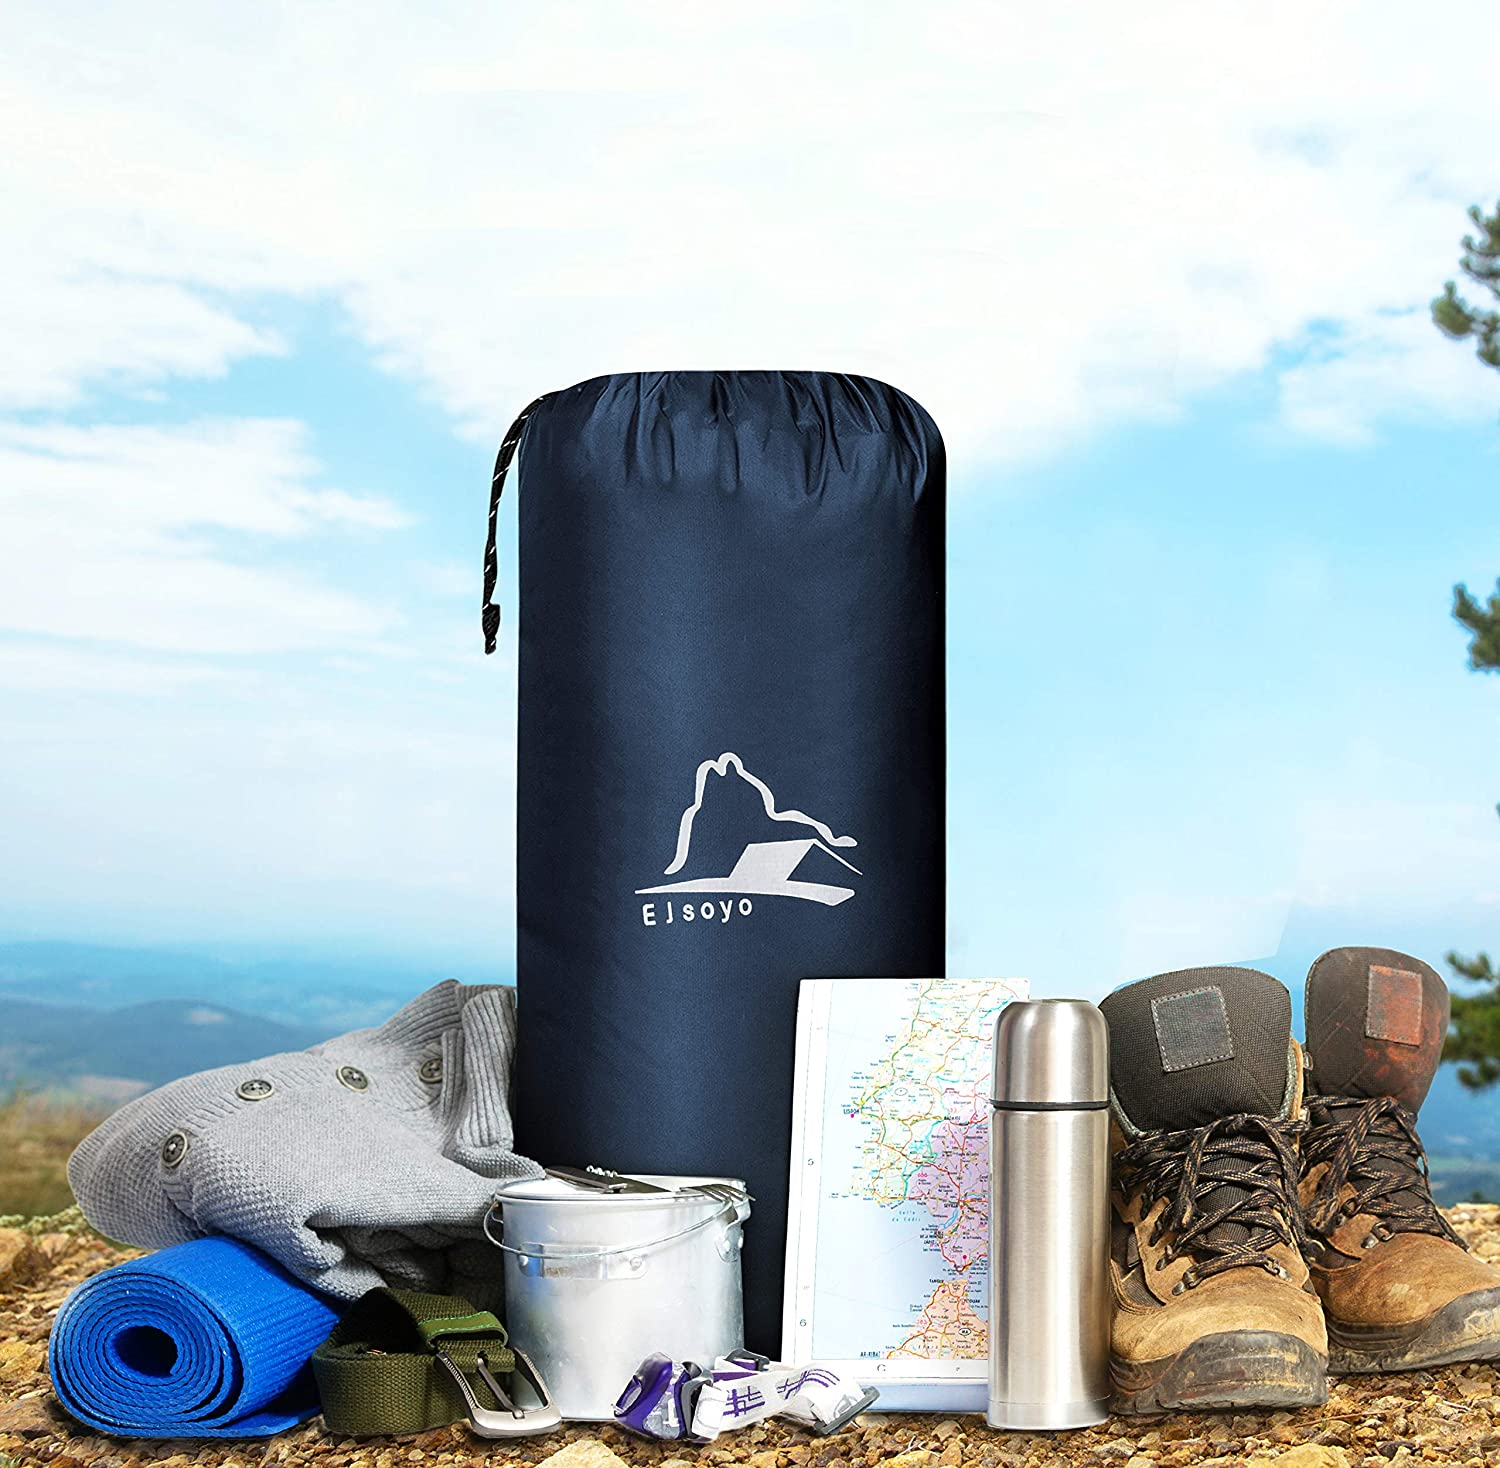 Ultralight 19.4 OZ,New Upgrade Camping Sleeping Pad with Built-in Inflator,Great for Backpacking EJsoyo Camping Sleeping Pad